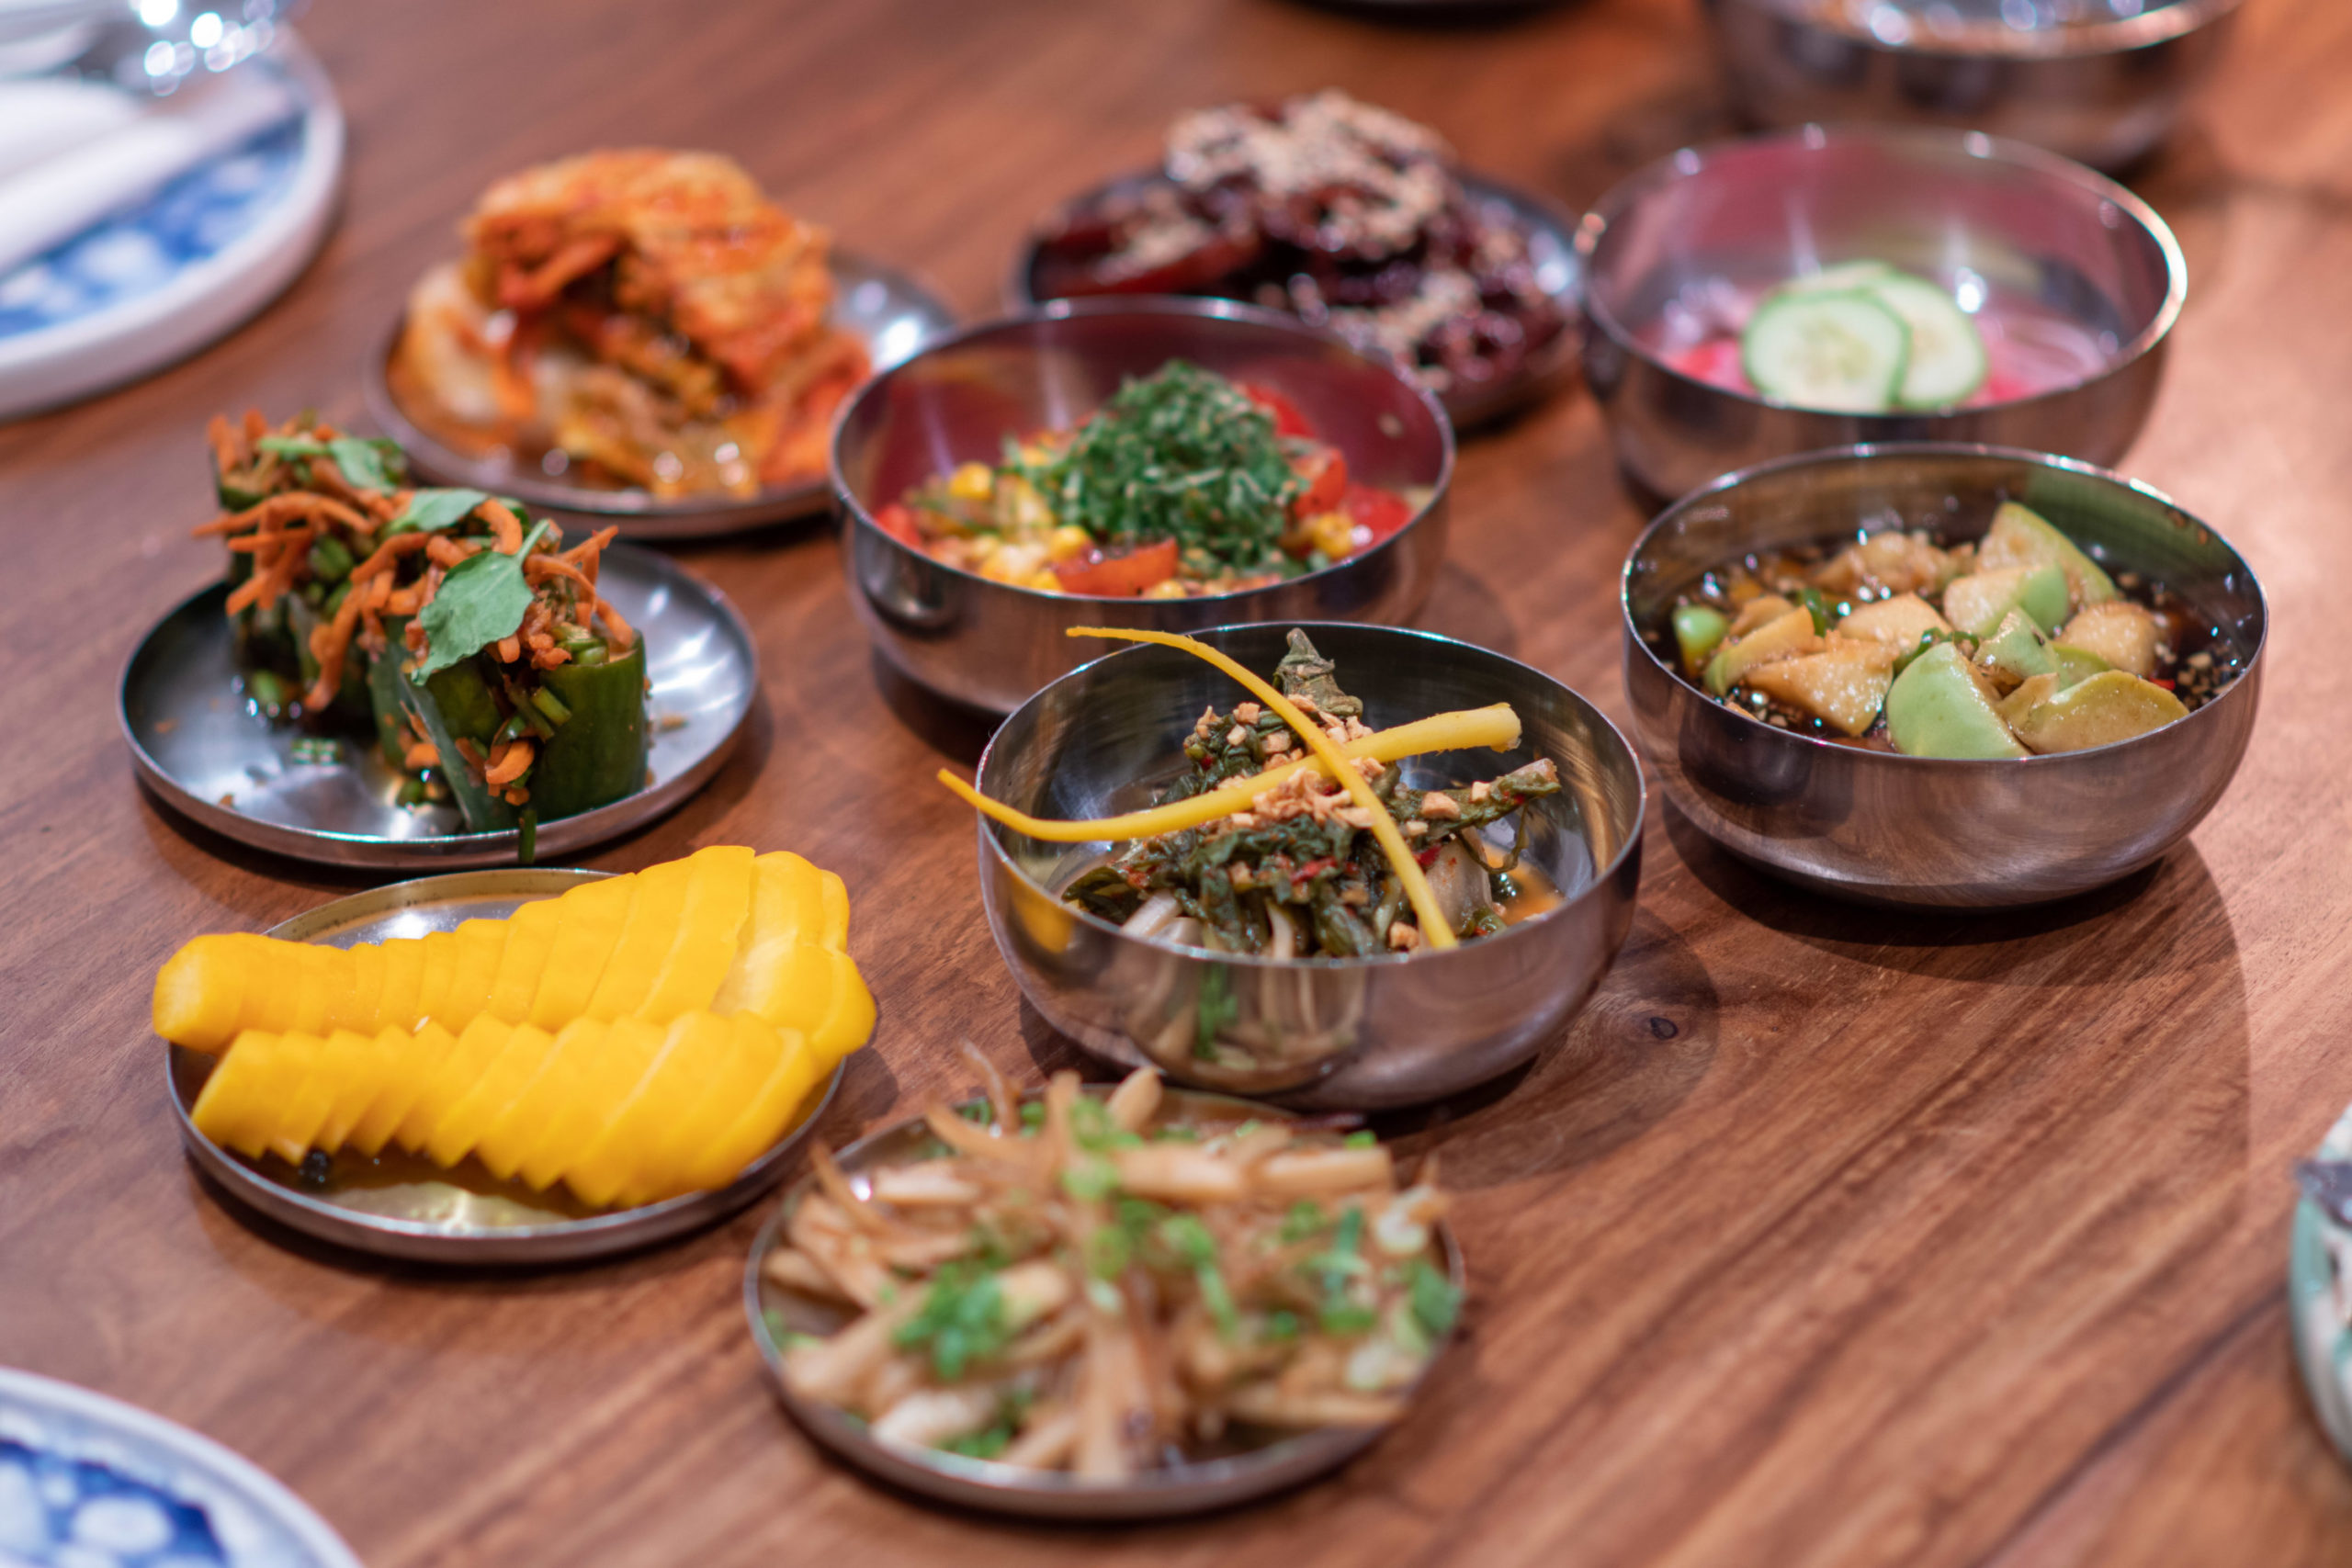 Panchan (small vegetable dishes)